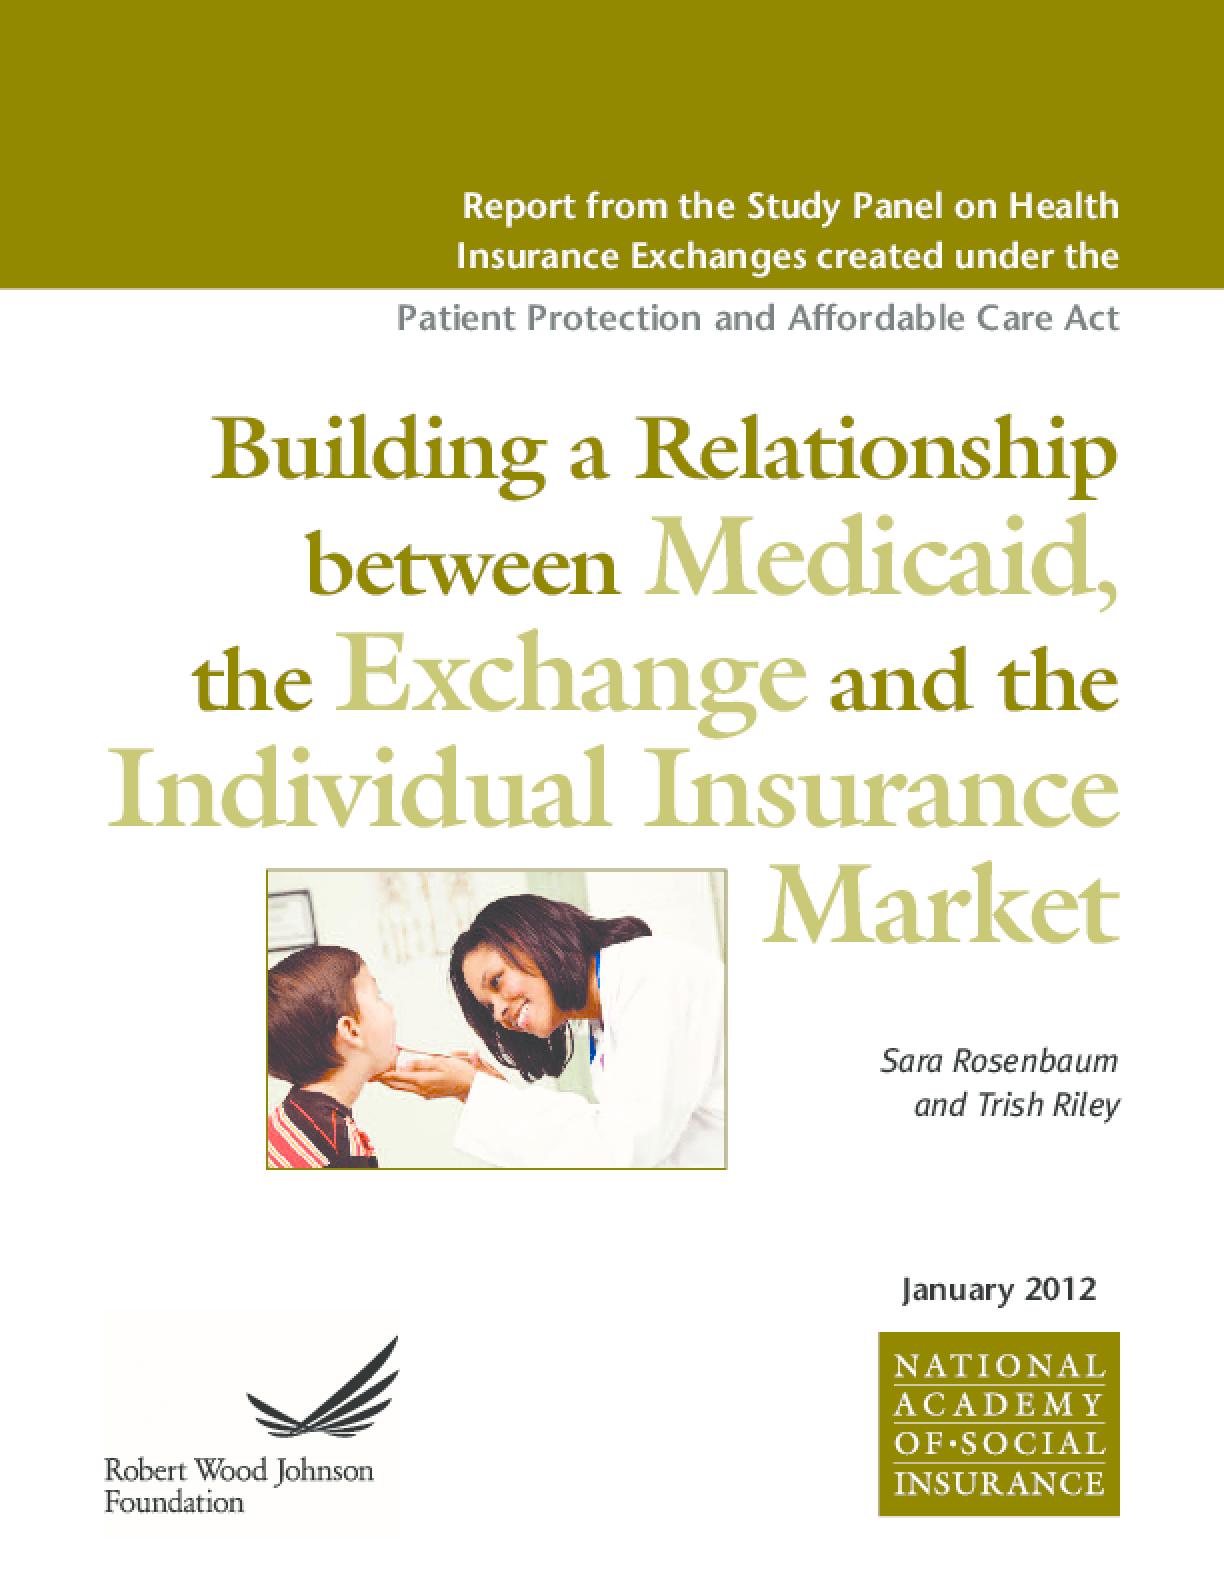 Building a Relationship Between Medicaid, the Exchange and the Individual Insurance Market